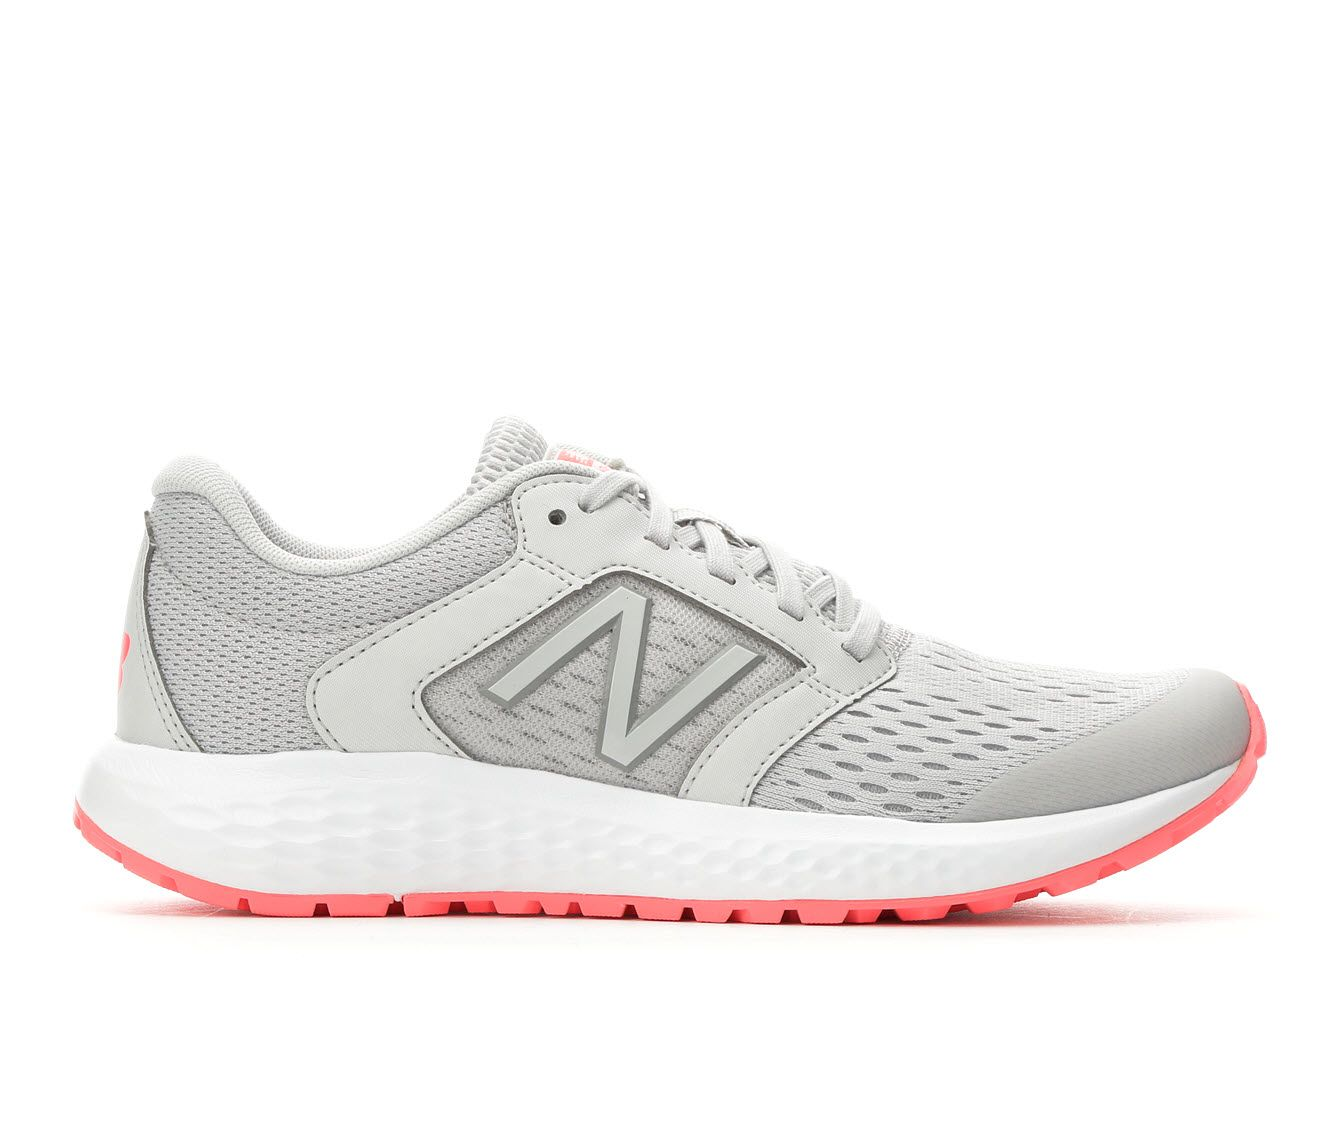 Womens sneakers, Womens workout shoes